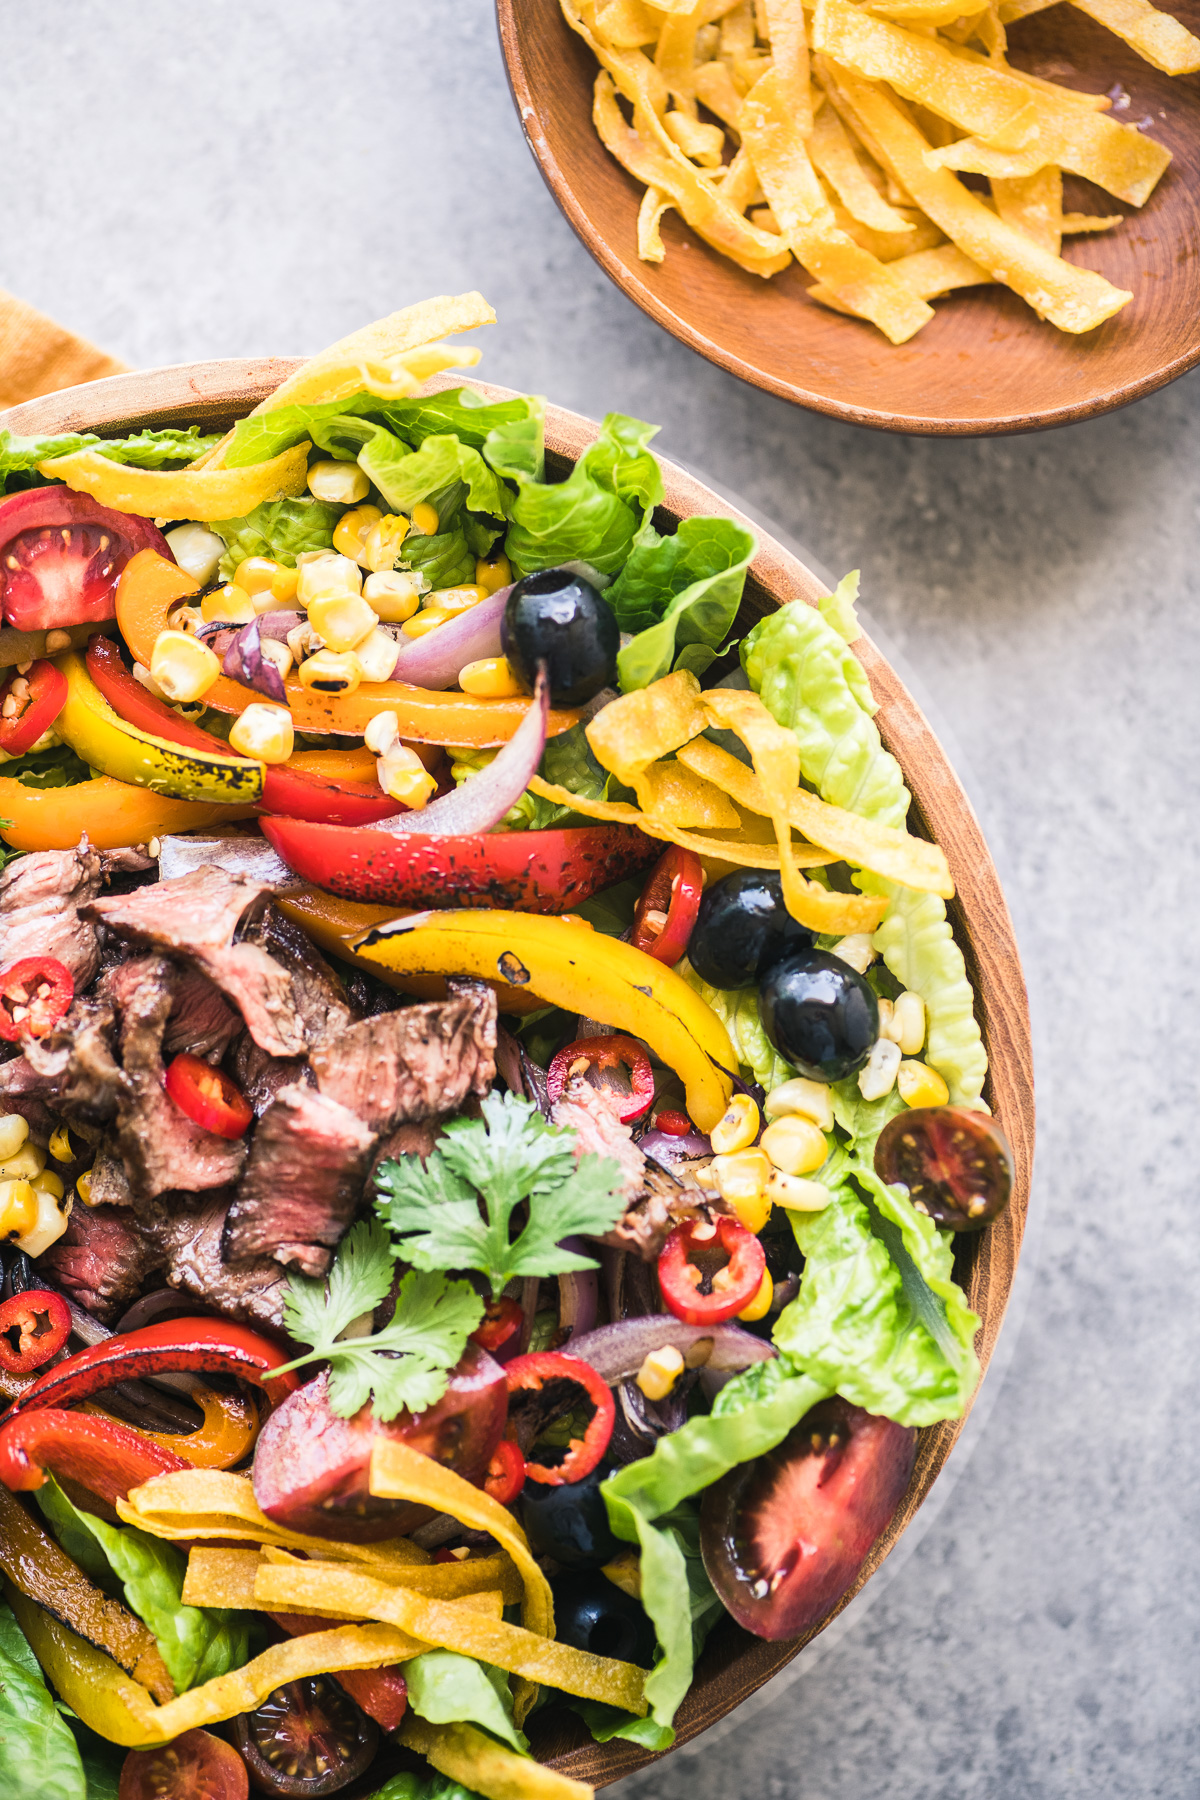 Tex-Mex fajita steak salad with homemade tortilla strips